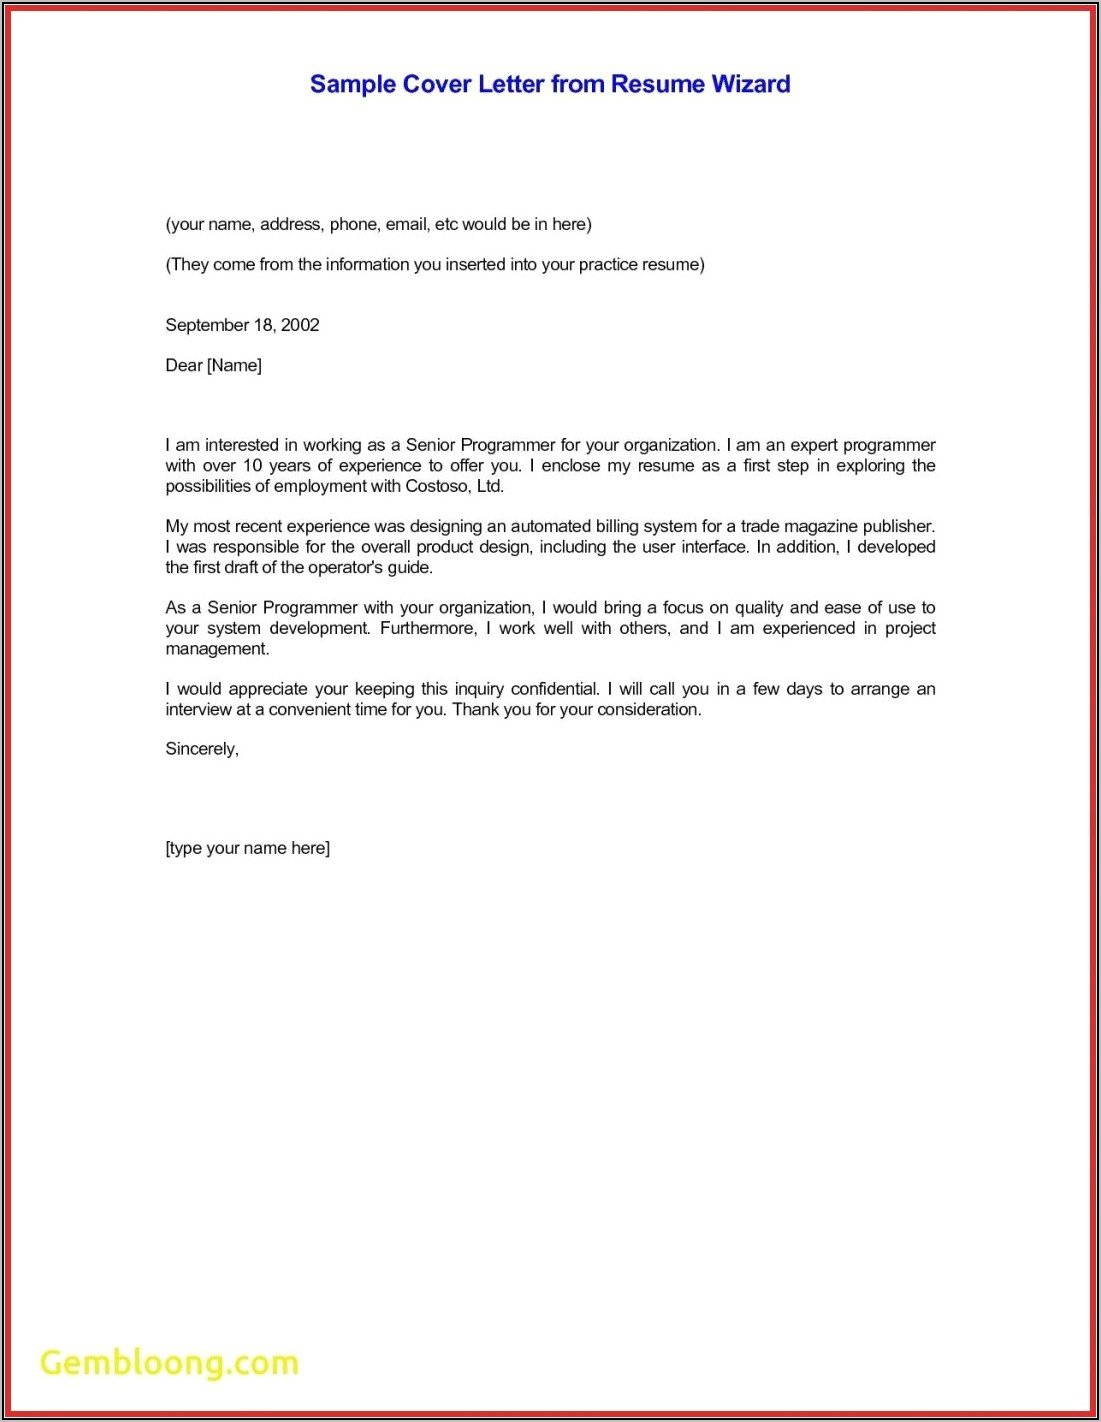 Sample Cover Letter For Resume Through Email